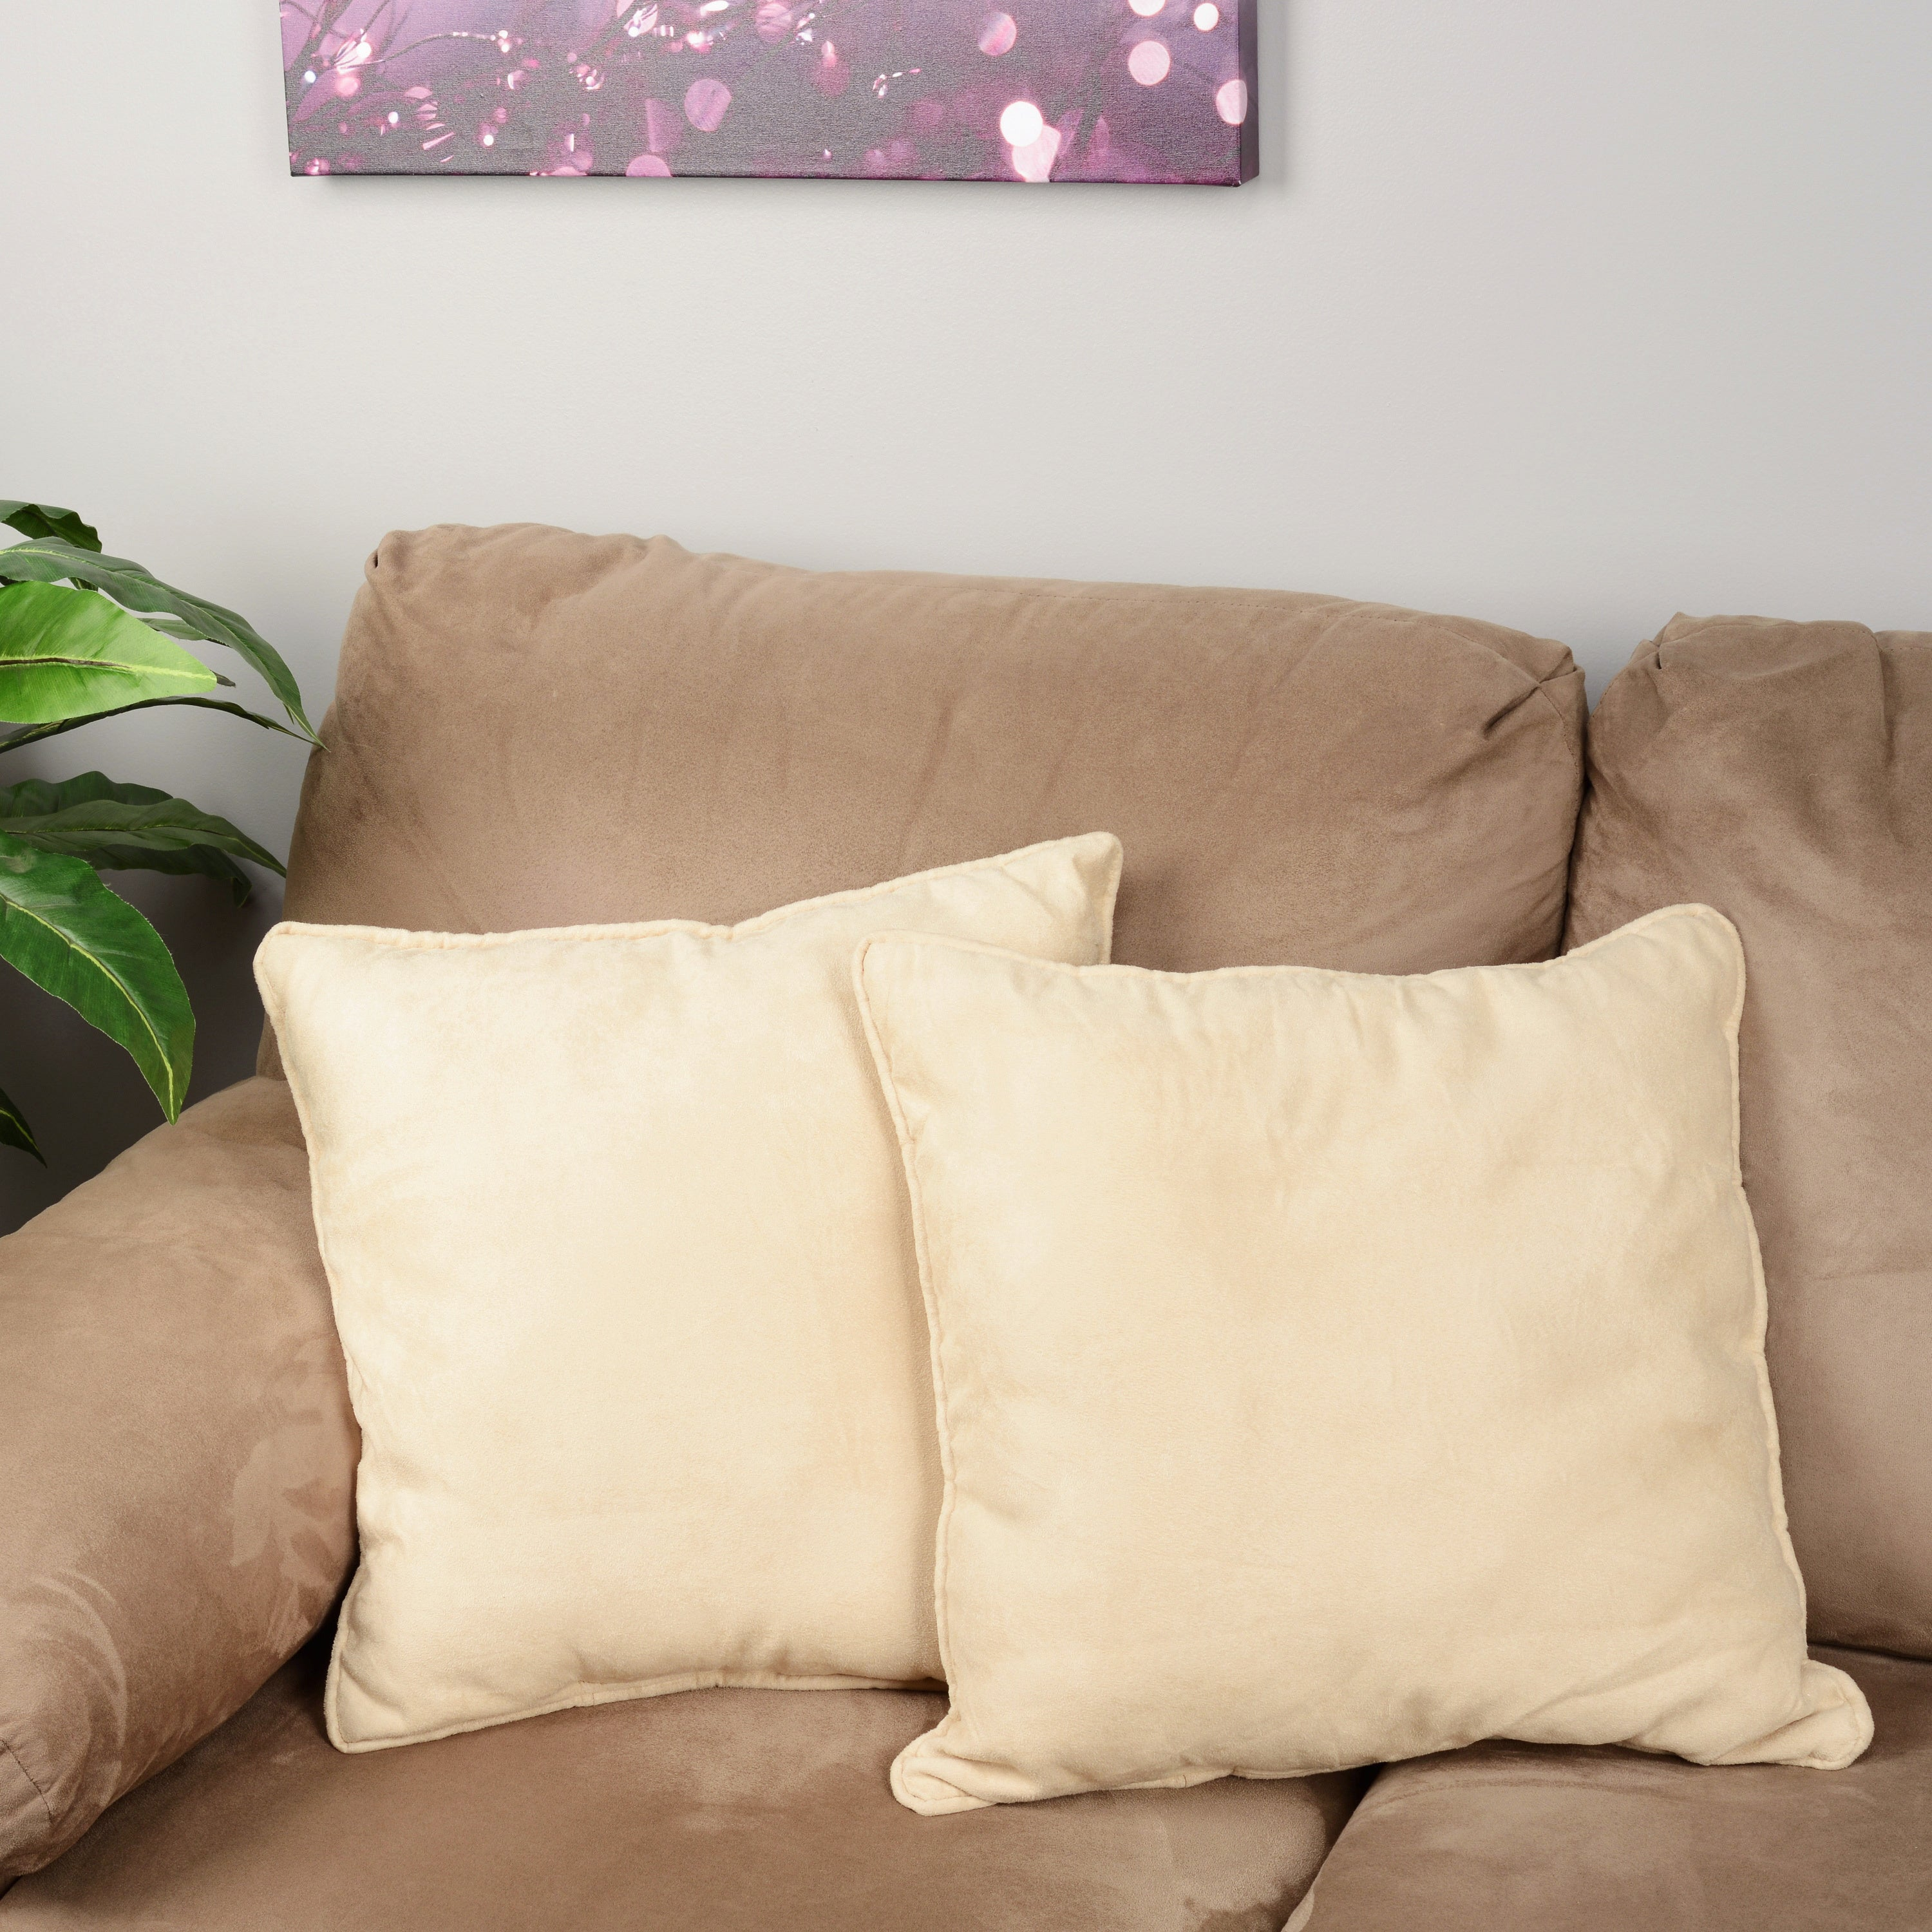 pillows floor on modern green inside sofas with white the room couch pink decor carpet living awesome ideas decorative design